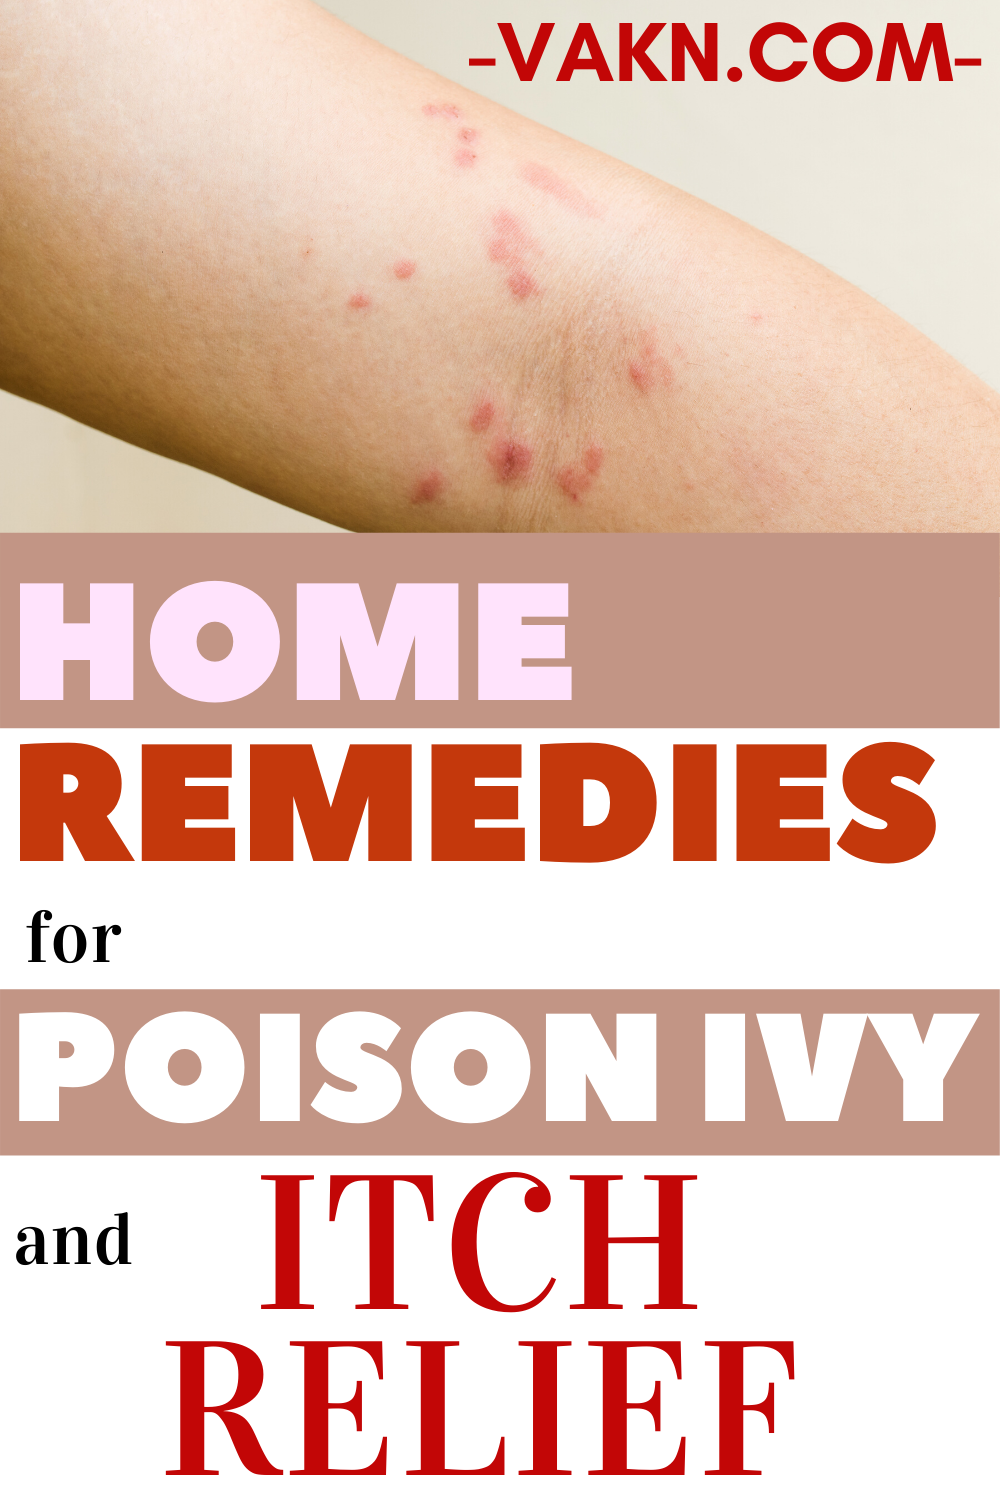 Home Remedies For Poison Ivy Rash And Itch Relief In 2020 Poison Ivy Remedies Poison Ivy Rash Poison Ivy Remedies Itch